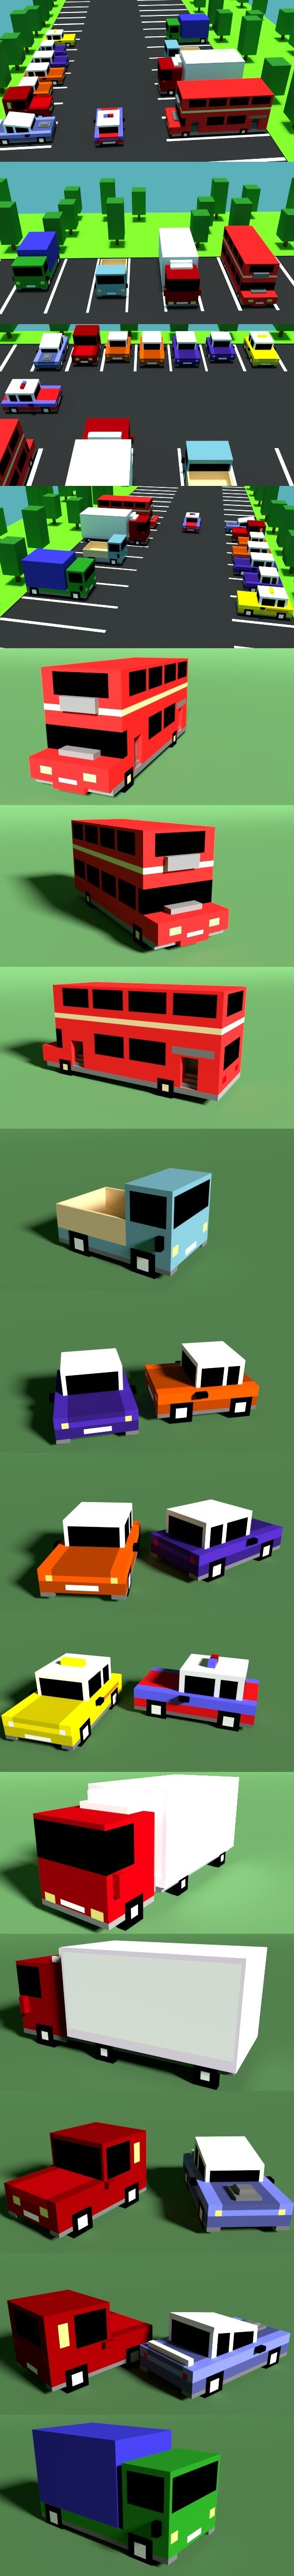 Low Poly Cars - 3DOcean Item for Sale